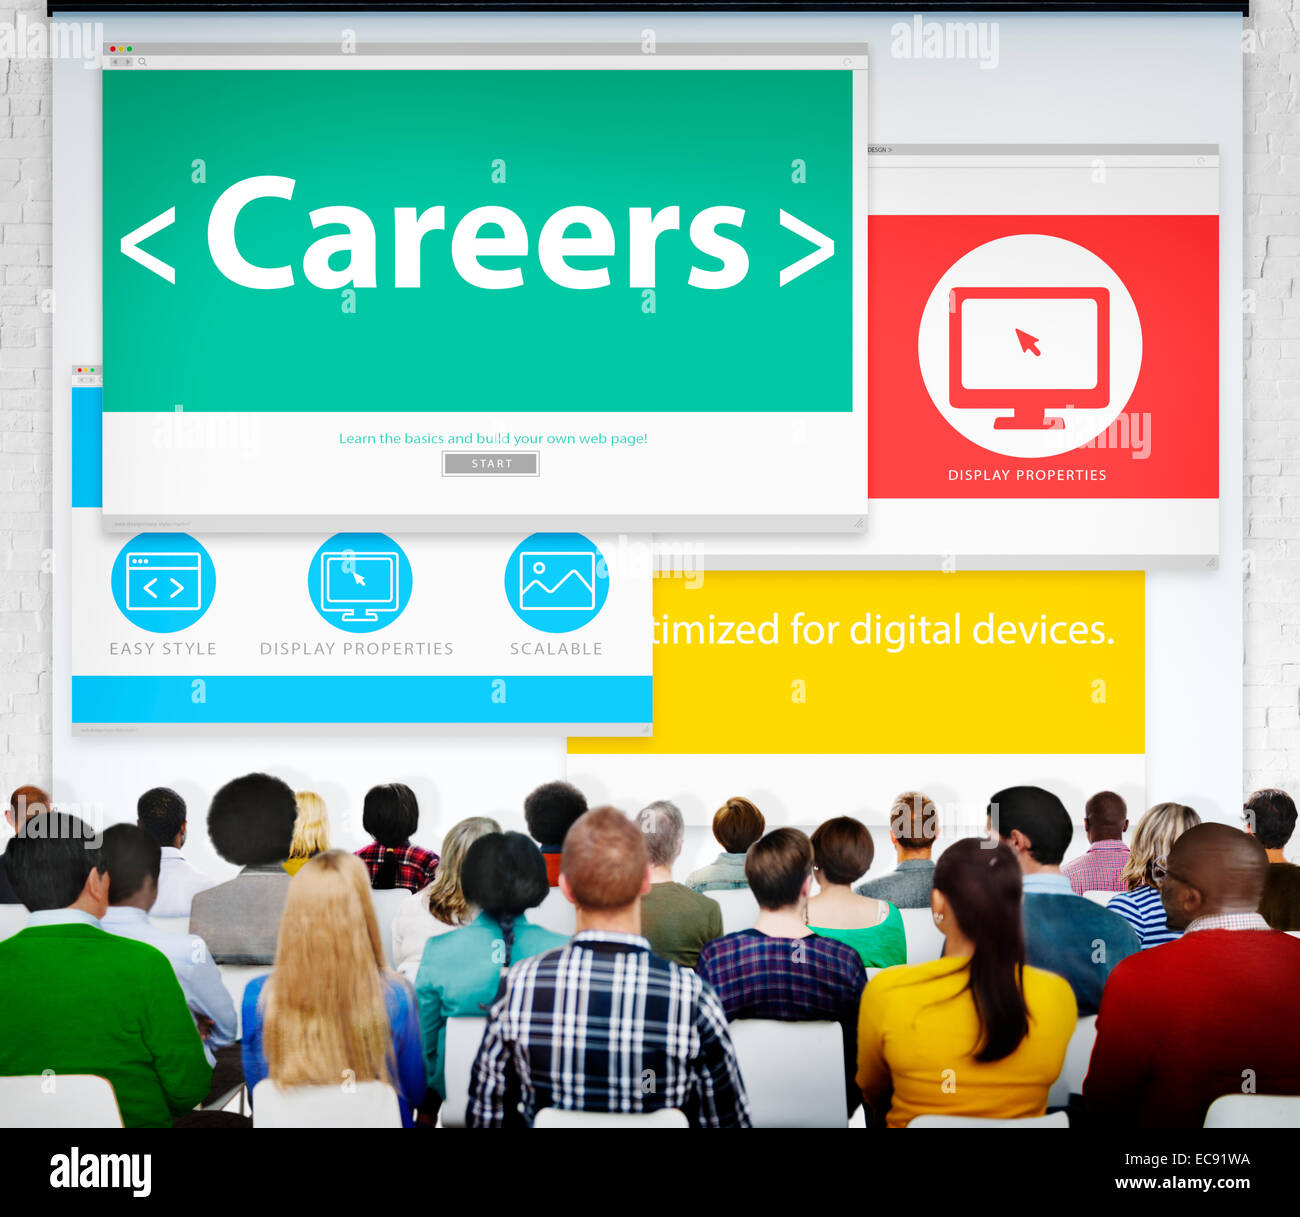 Careers Employment Job Recruitment Profession Seminar Conference Concept - Stock Image